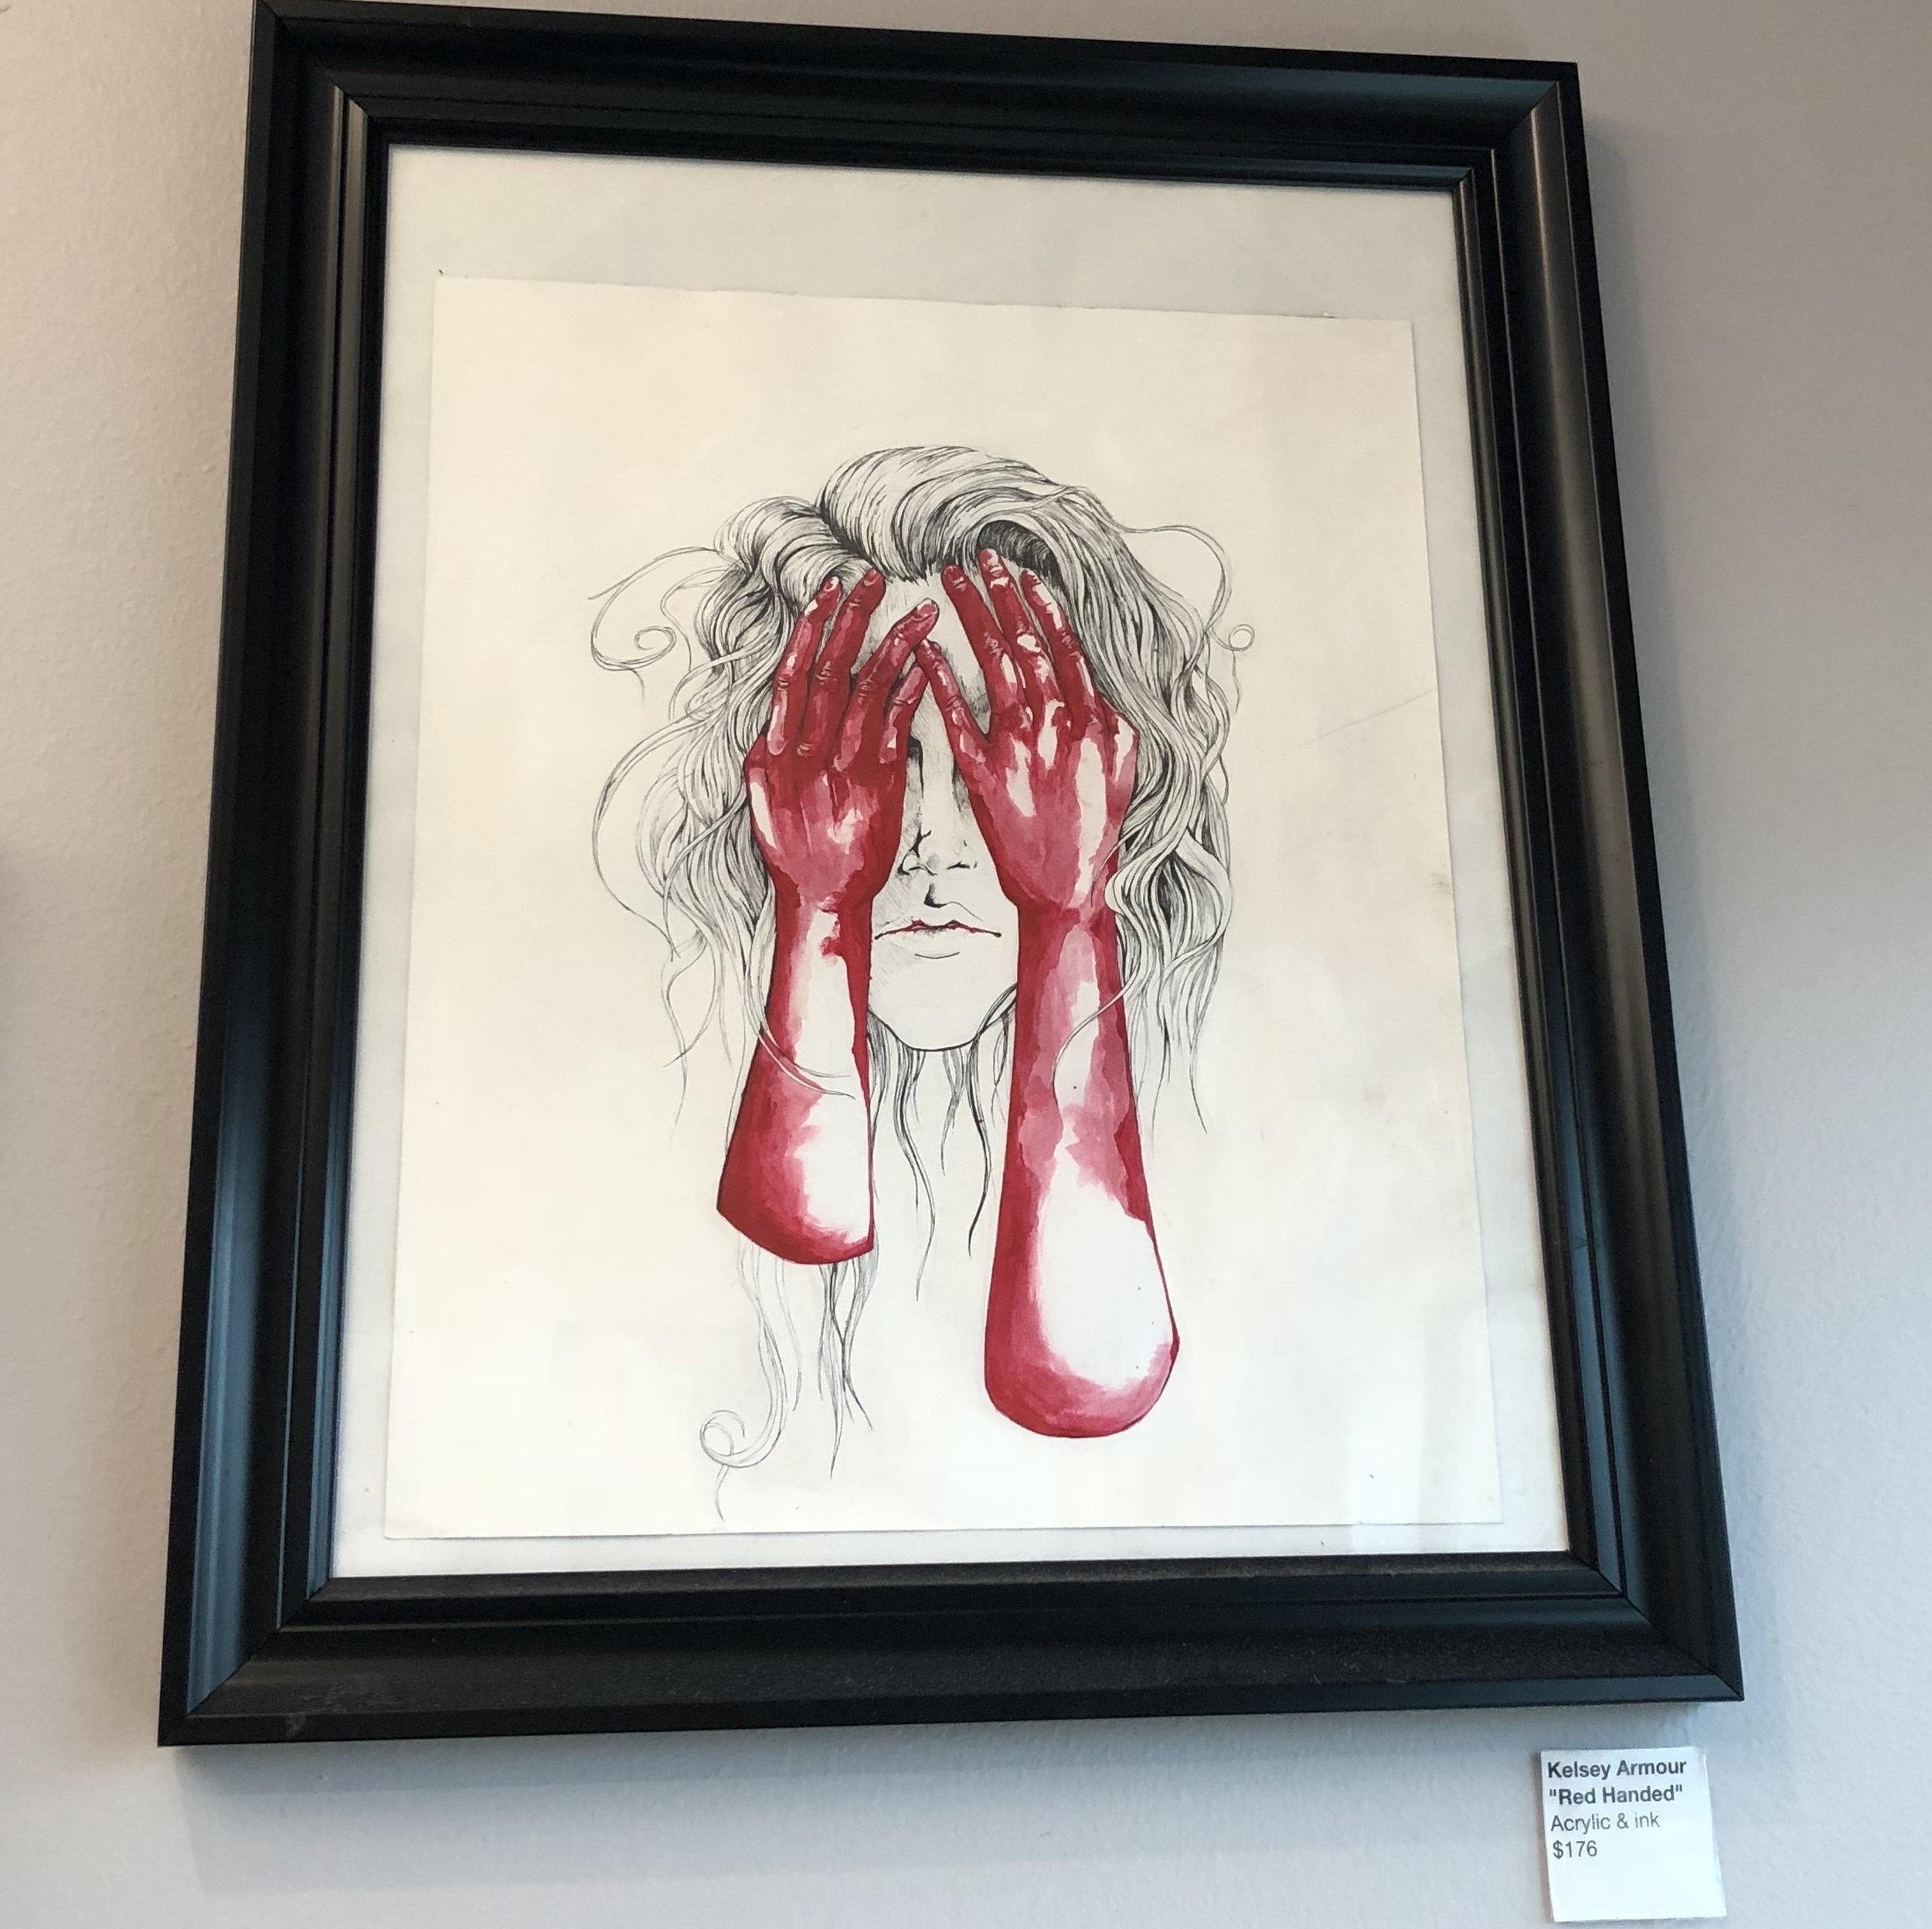 RED HANDED - ACRYLIC AND INK $176